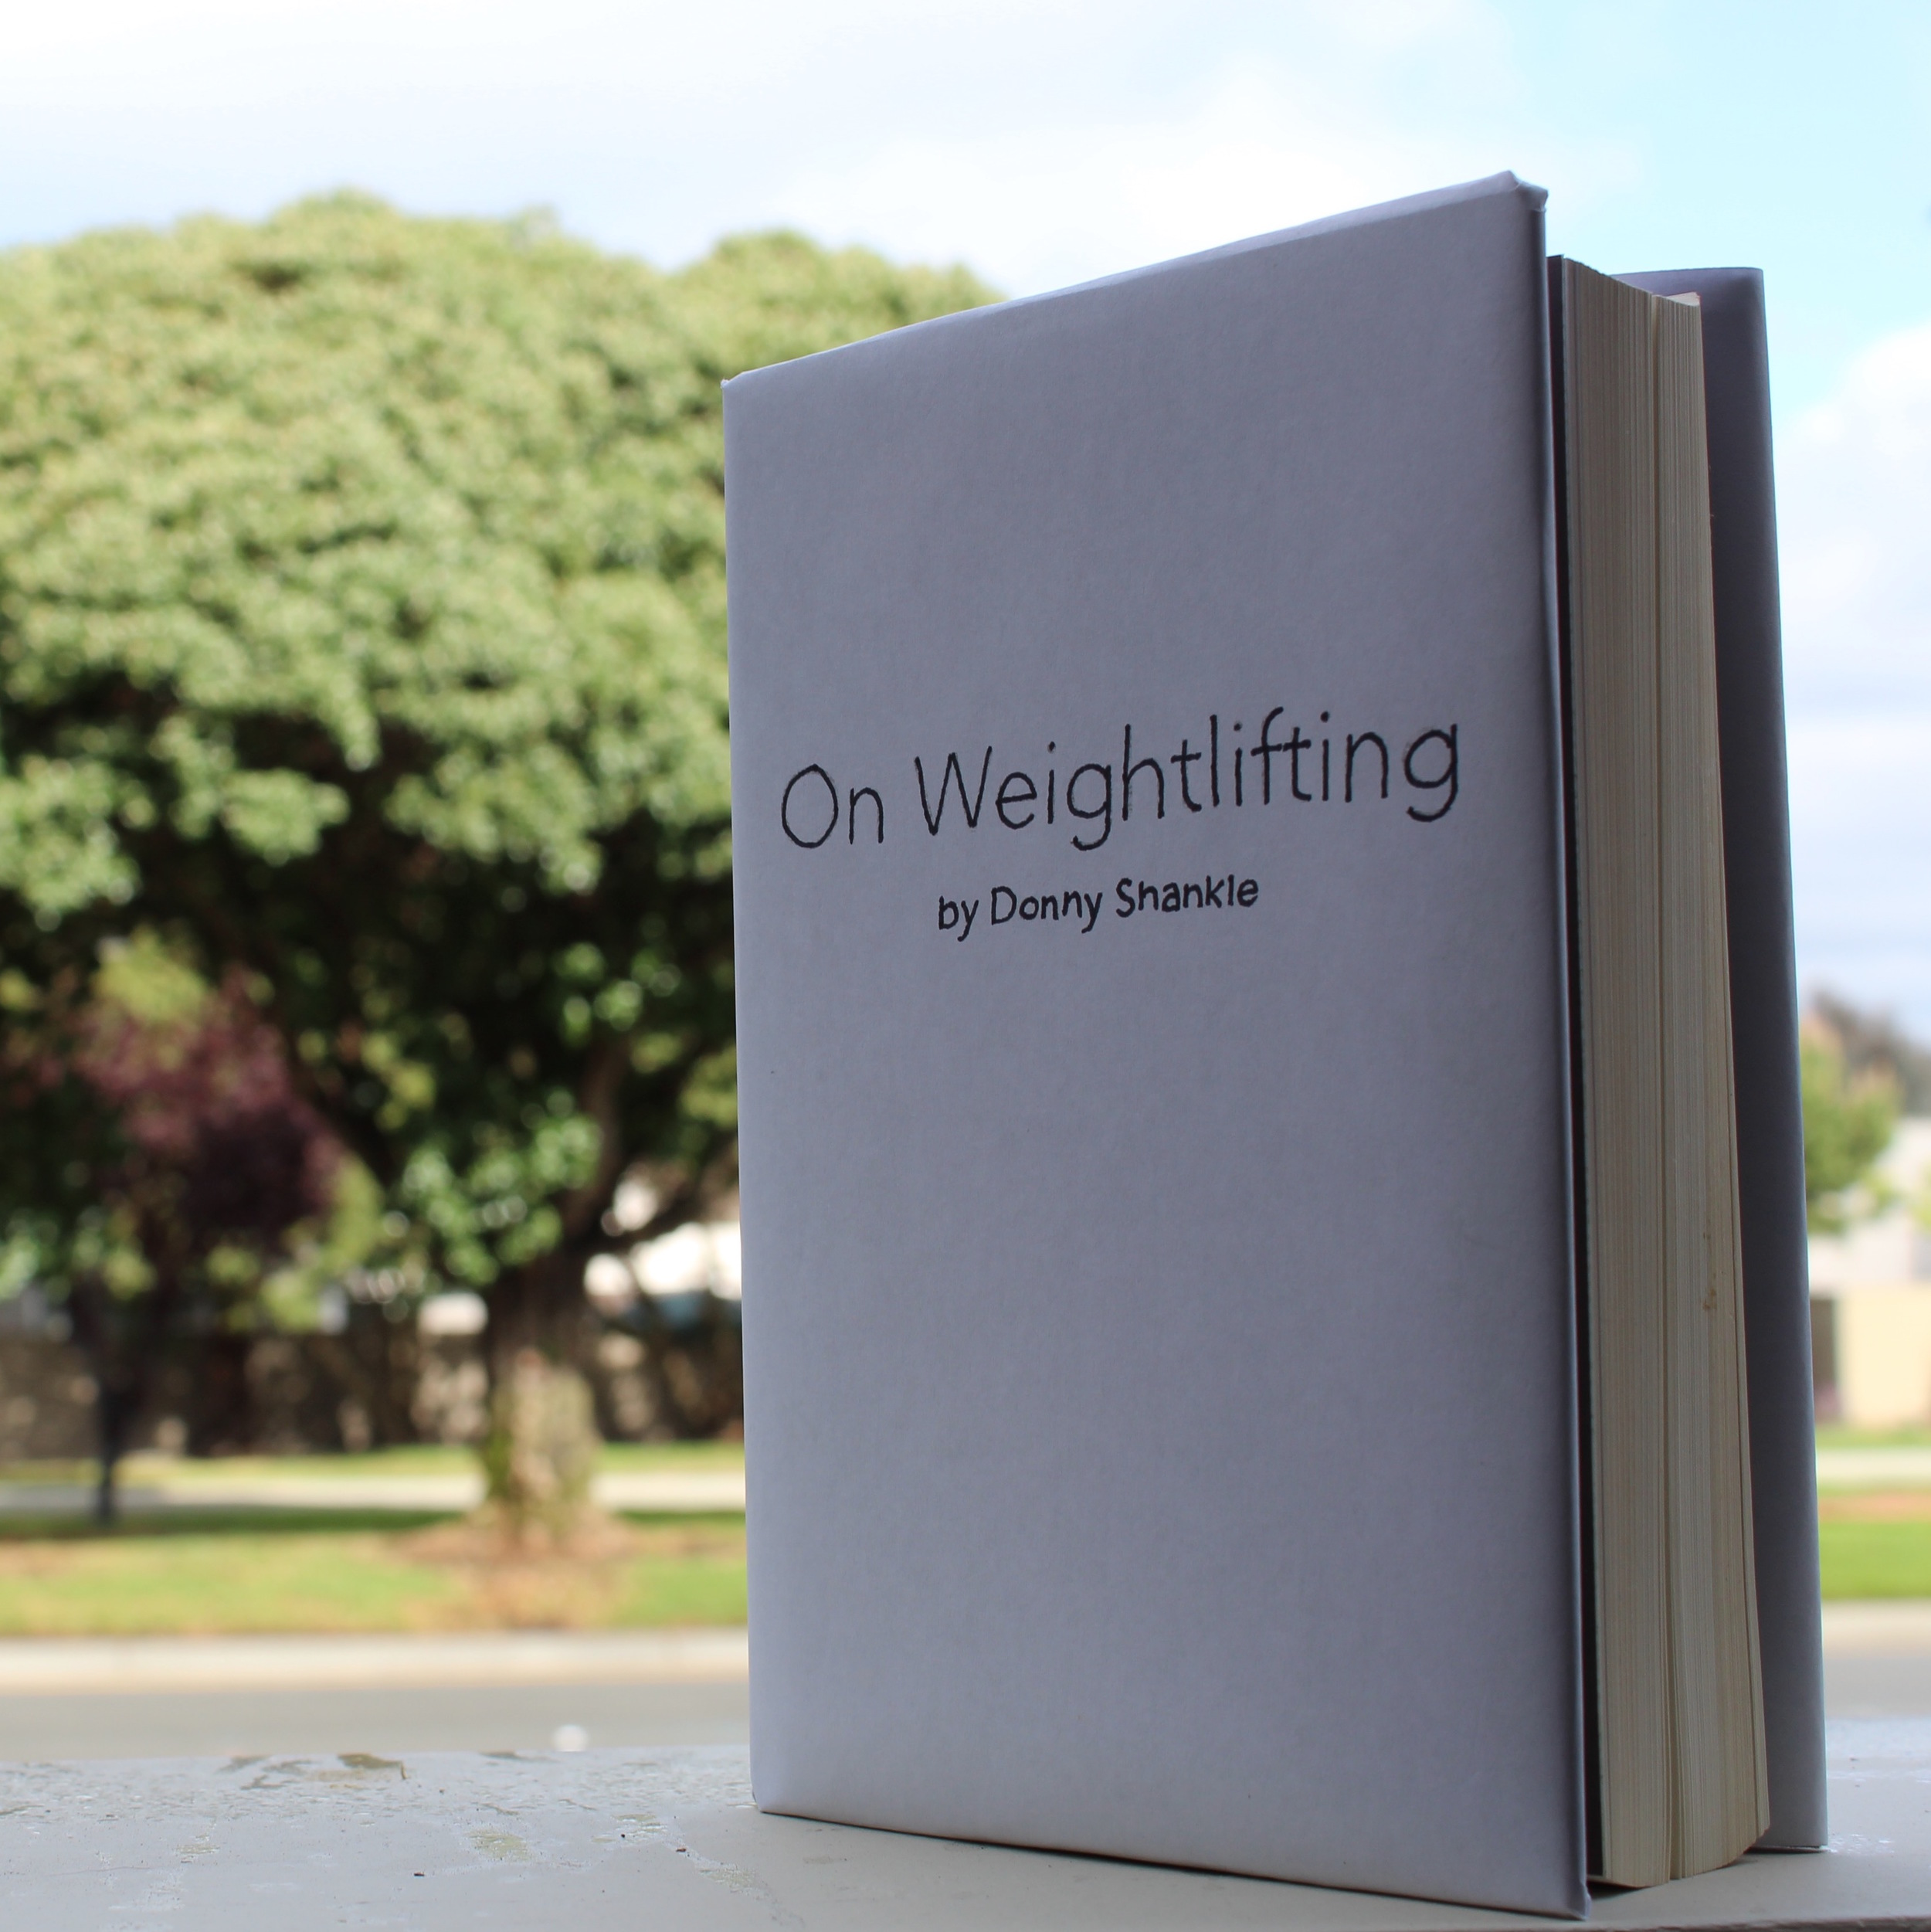 On weightlifting by donny shankle